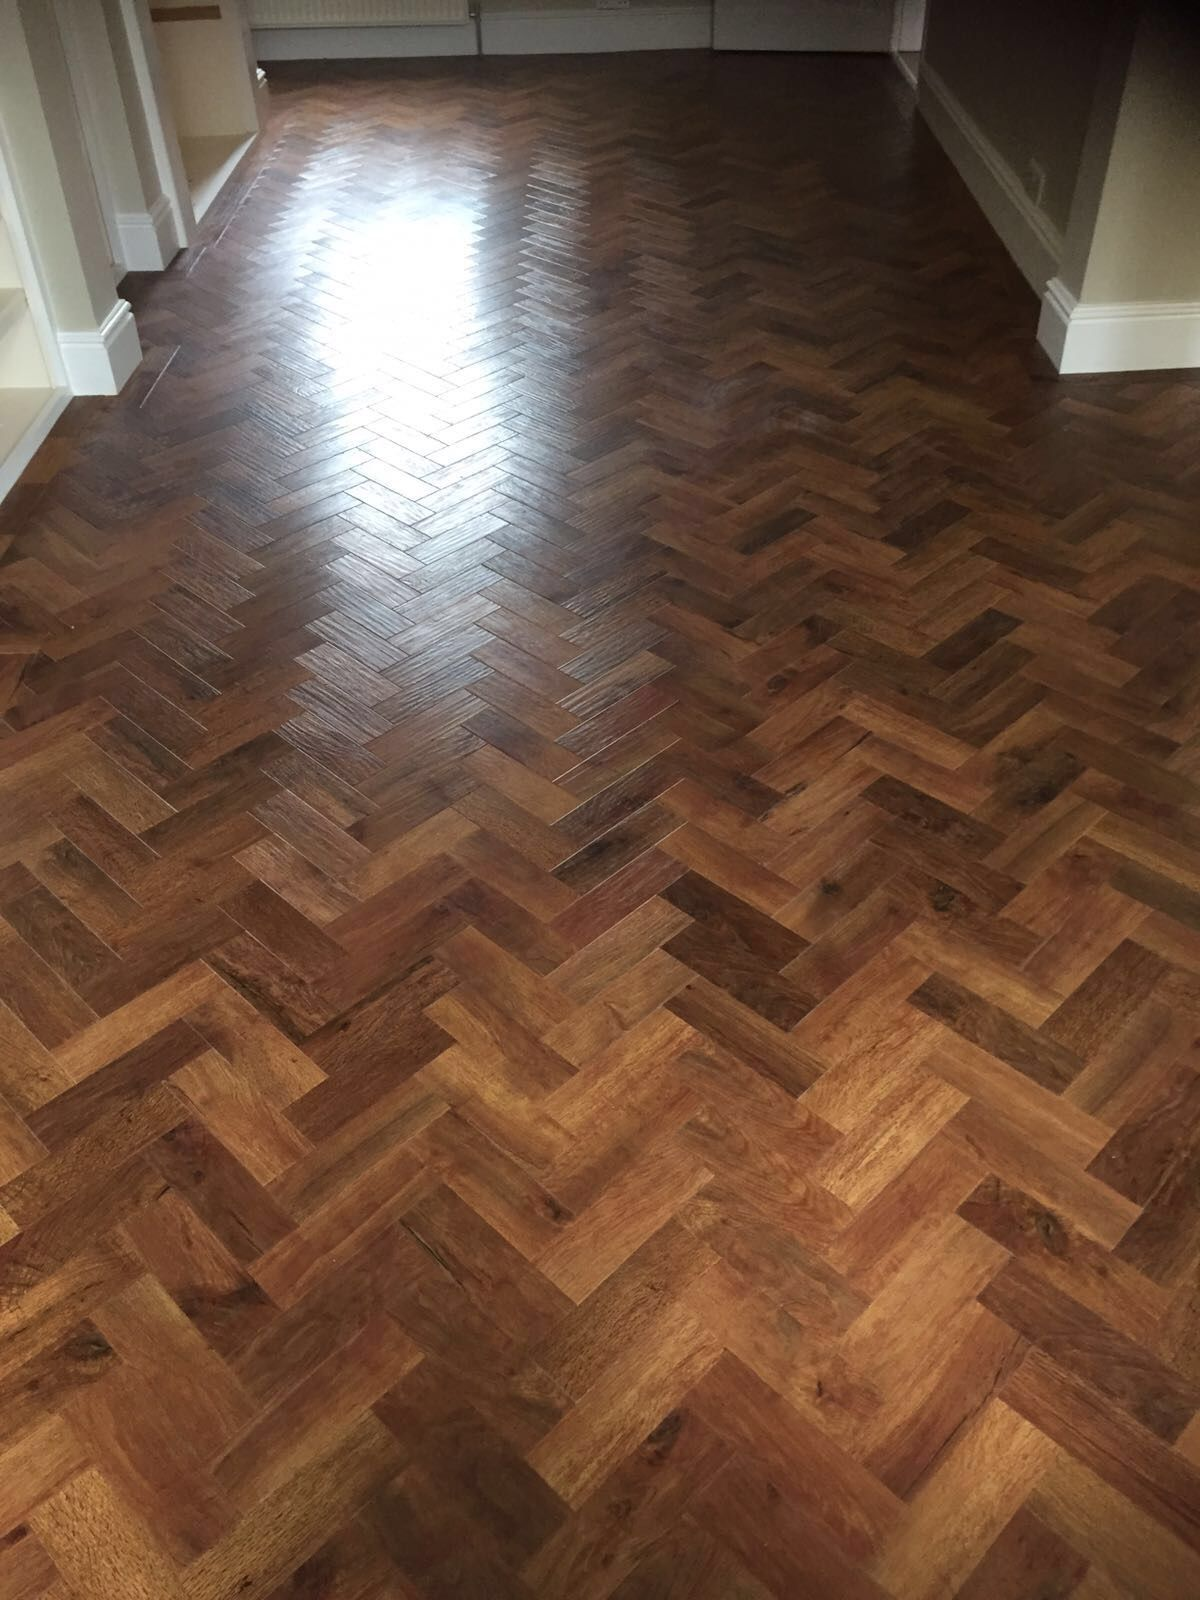 Karndean Art Select Auburn Oak Parquet Flooring Fitted By